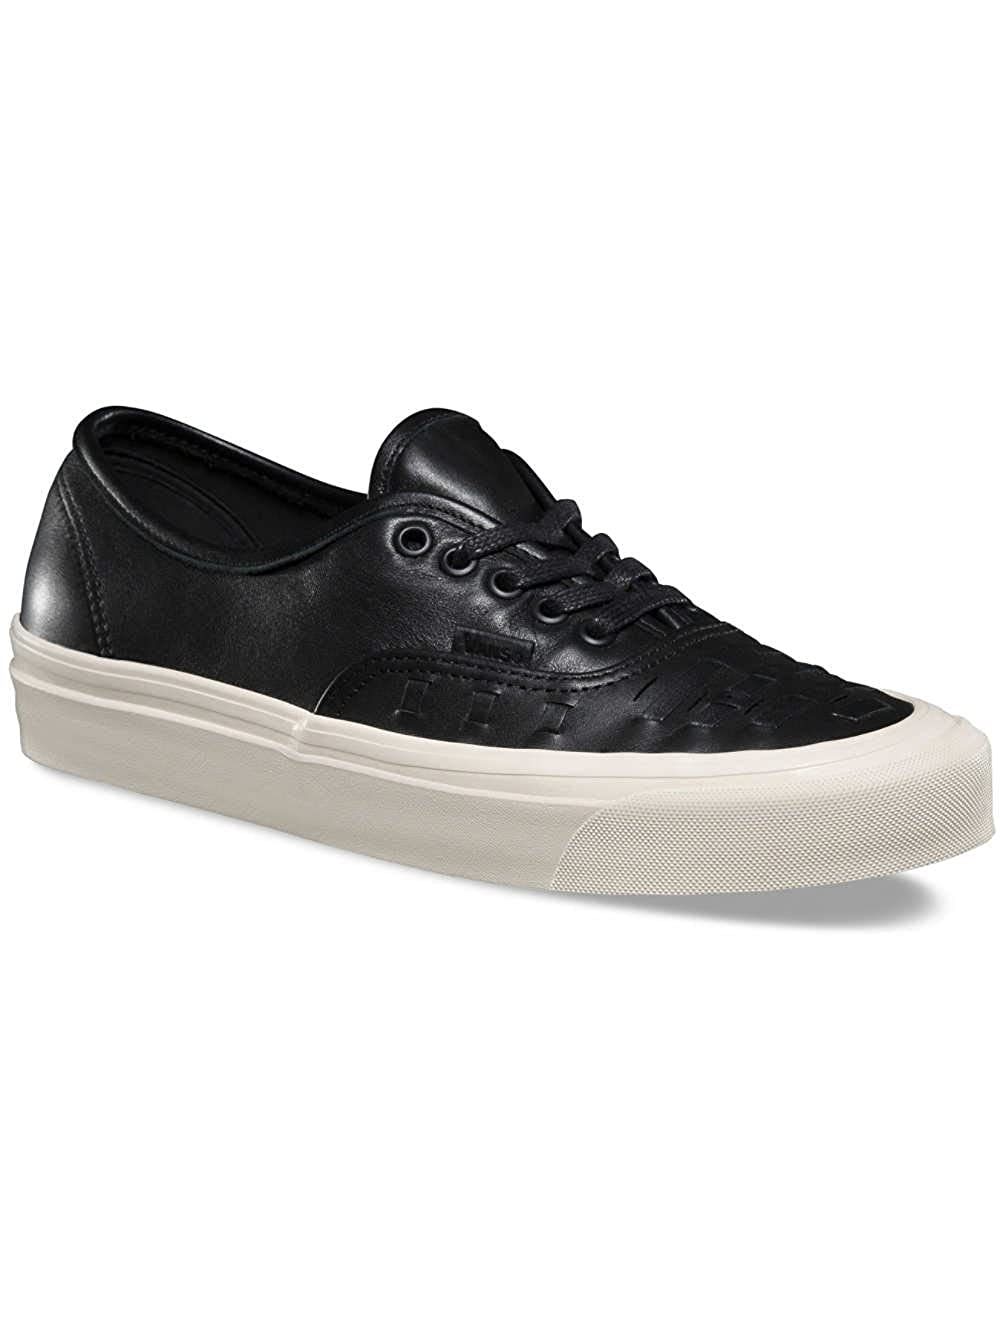 0854d0ce1e Amazon.com  Vans UA Authentic Weave DX Sneakers VN0A38F3L3A  Shoes